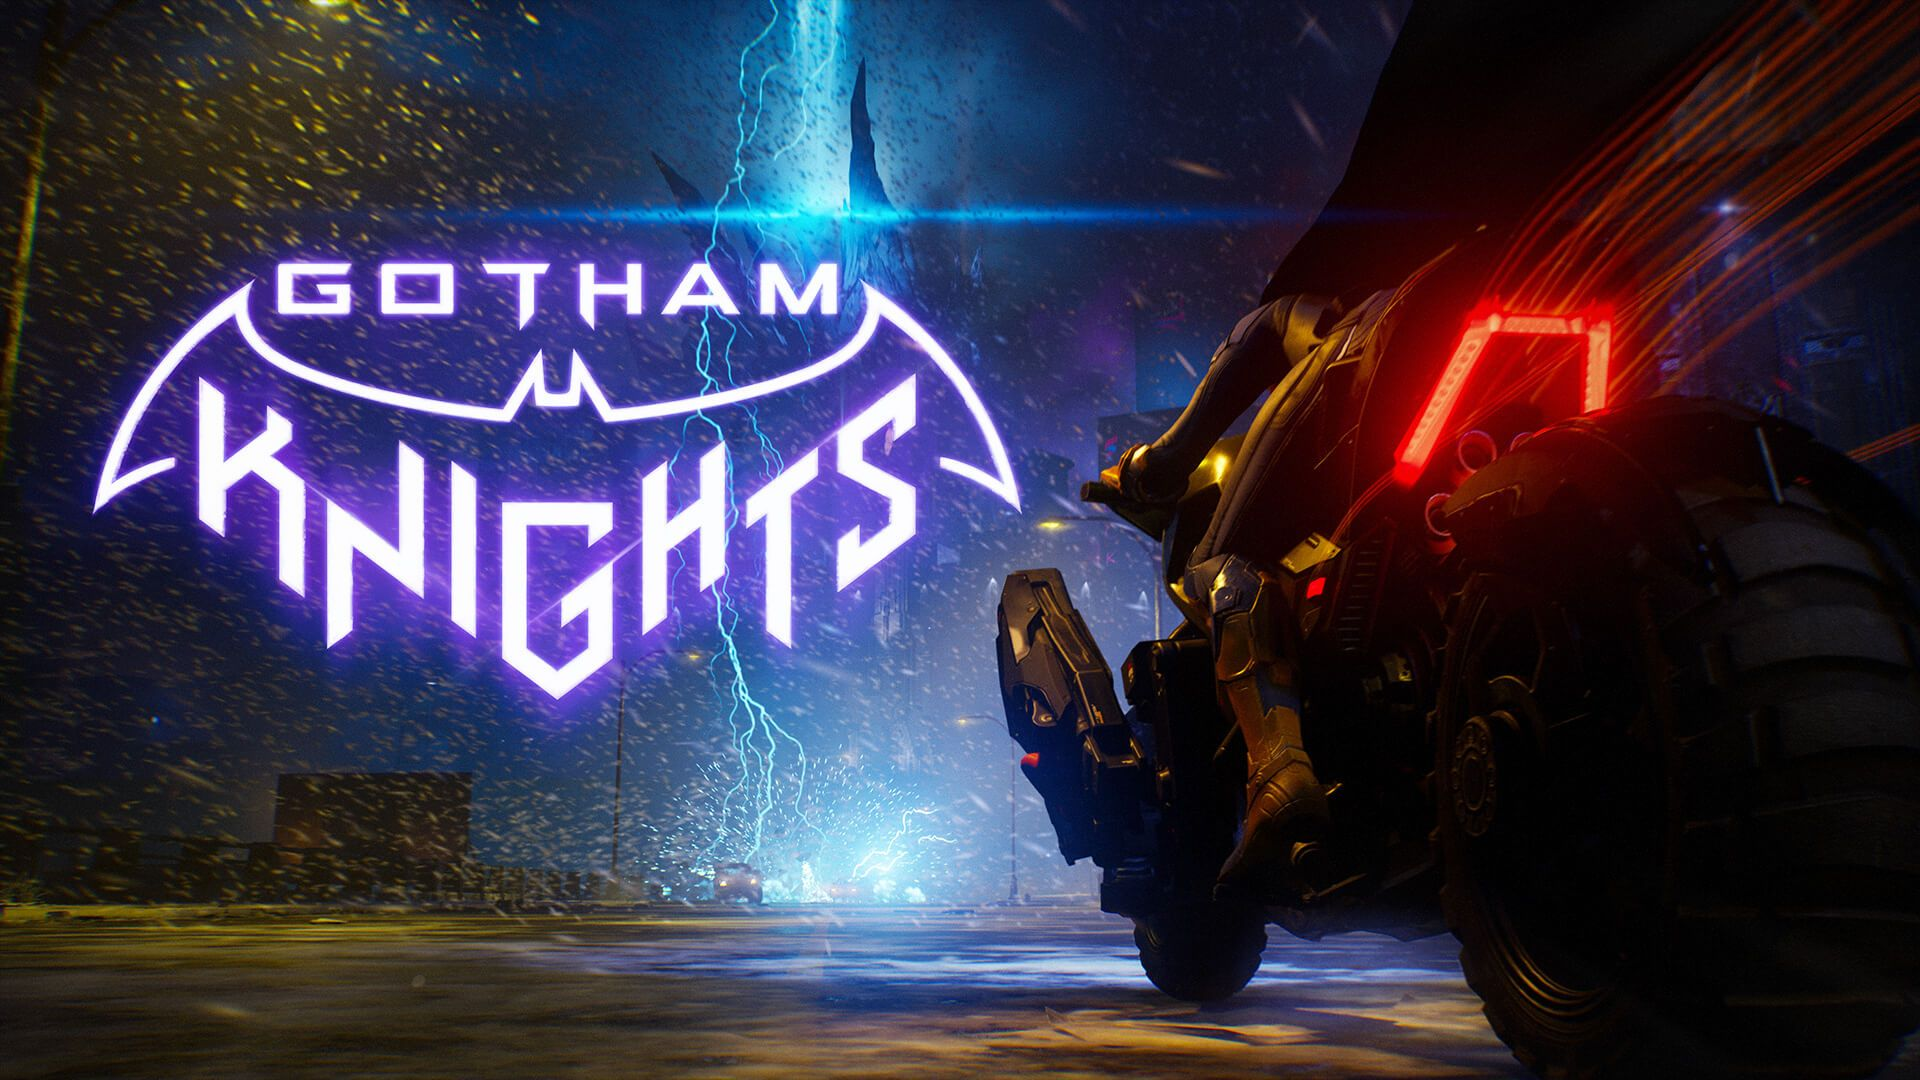 /the-next-batman-game-gotham-knights-release-date-story-gameplay-b31l34cz feature image